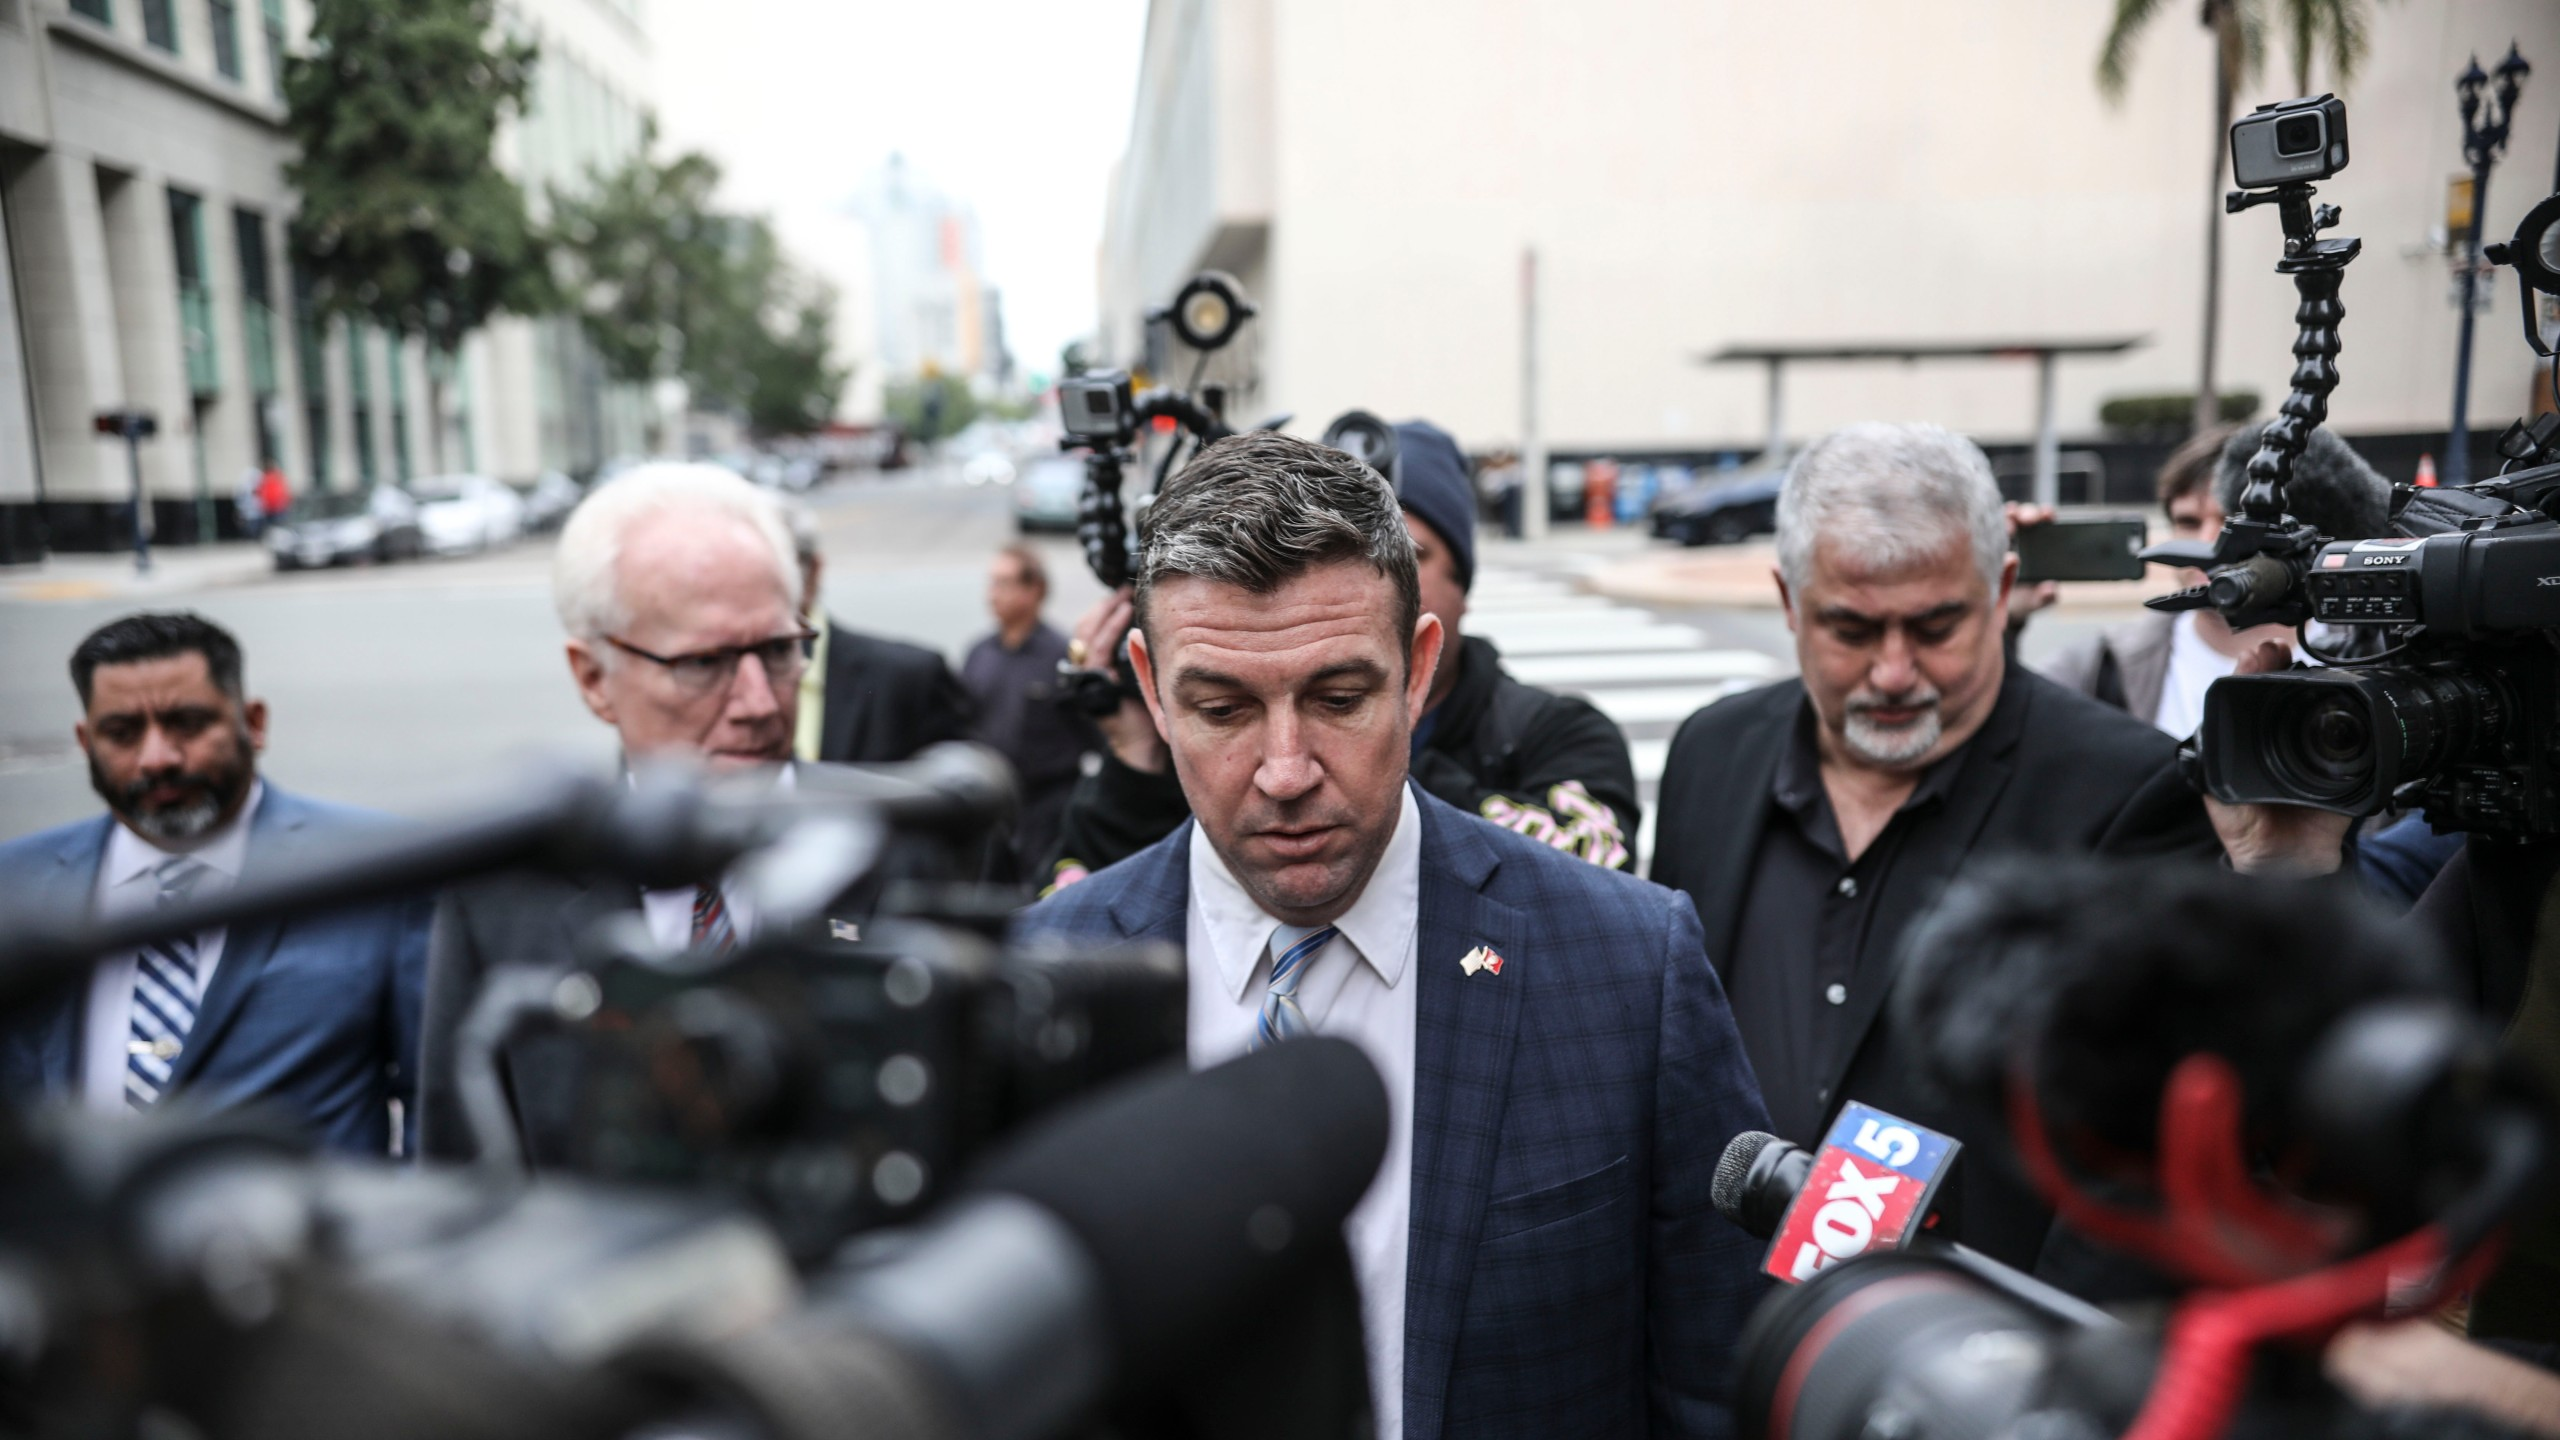 Rep. Duncan Hunter (R-CA) walks into a federal courthouse on Dec. 3, 2019, in San Diego. (Credit: Sandy Huffaker/Getty Images)